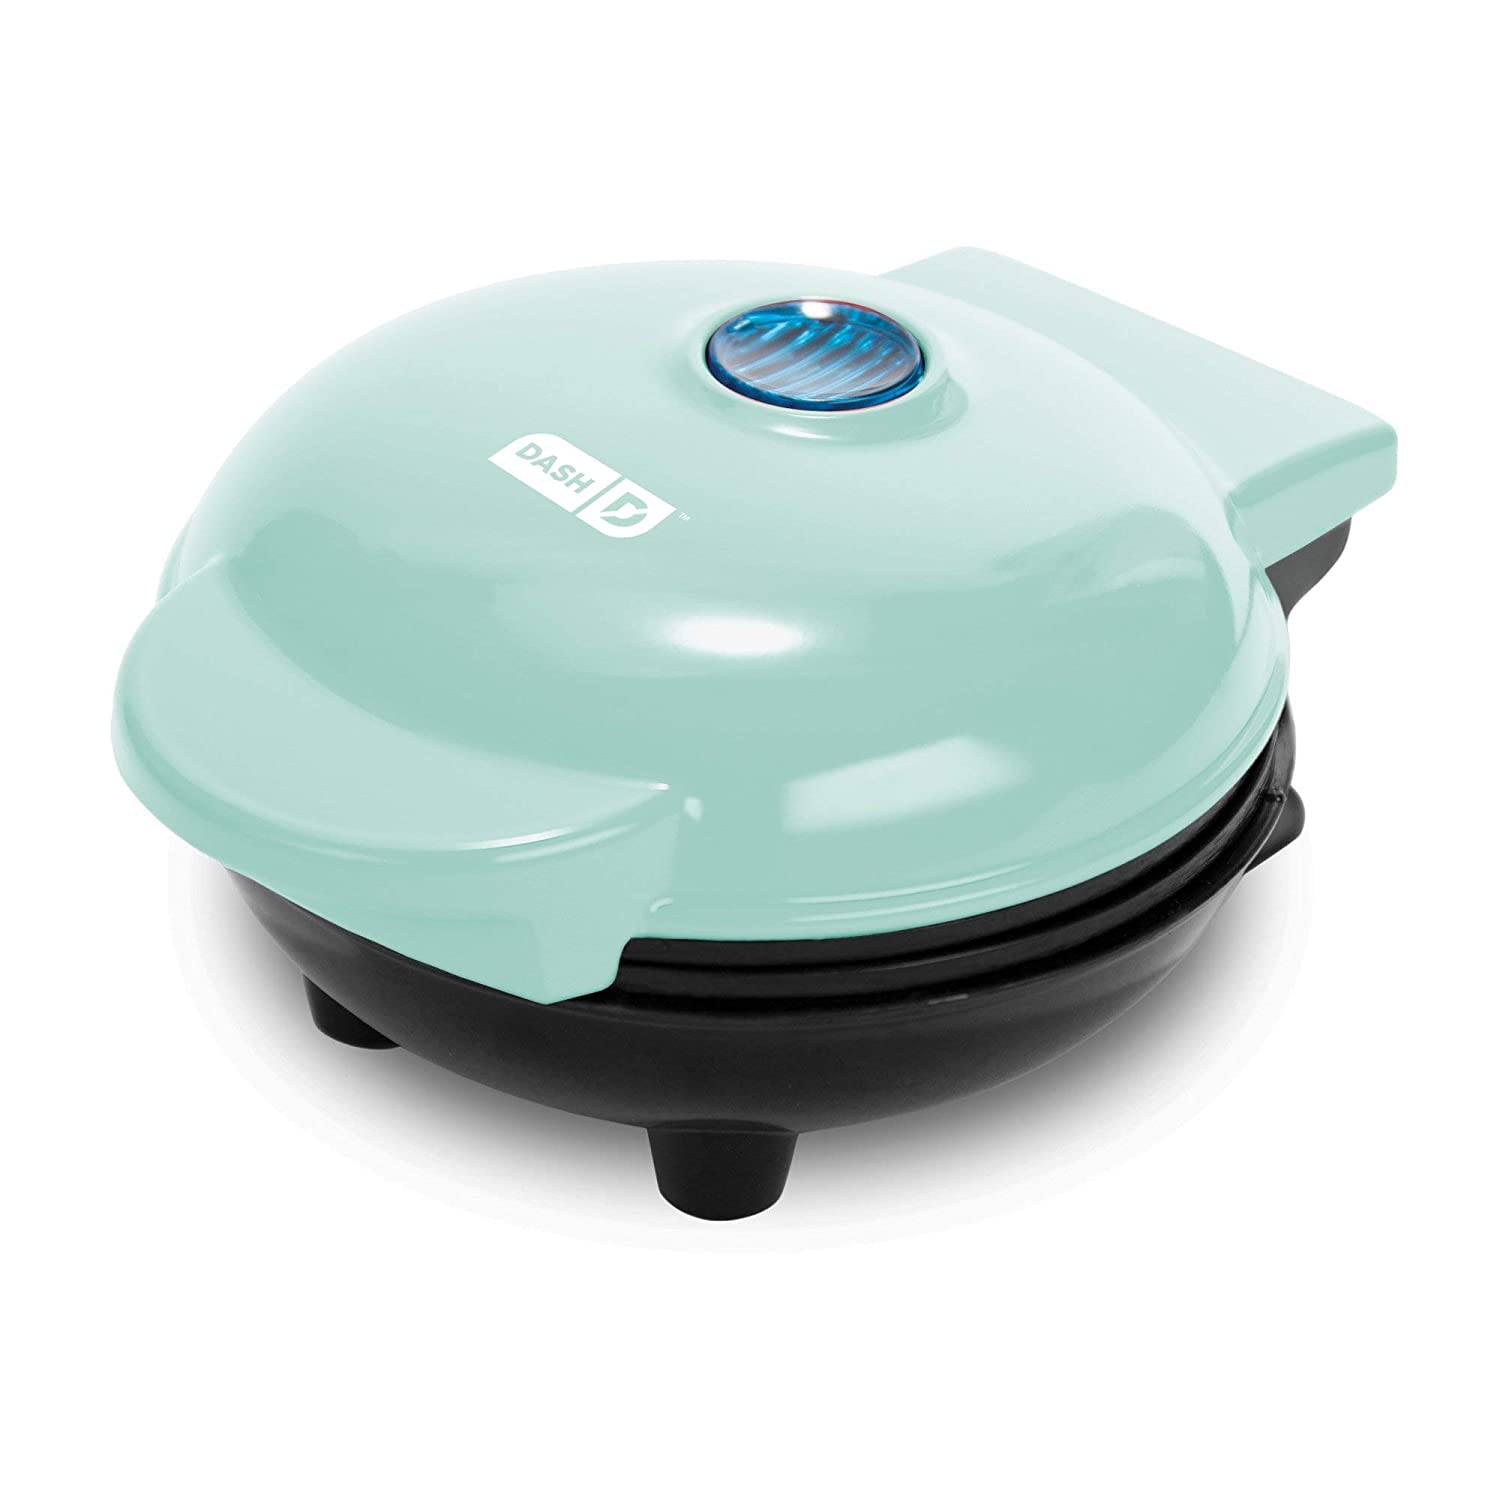 Dash Mini Maker The Mini Waffle Maker Machine for Individual Waffles, Paninis, Hash browns, other on the go Breakfast, Lunch, or Snacks – Aqua Renewed